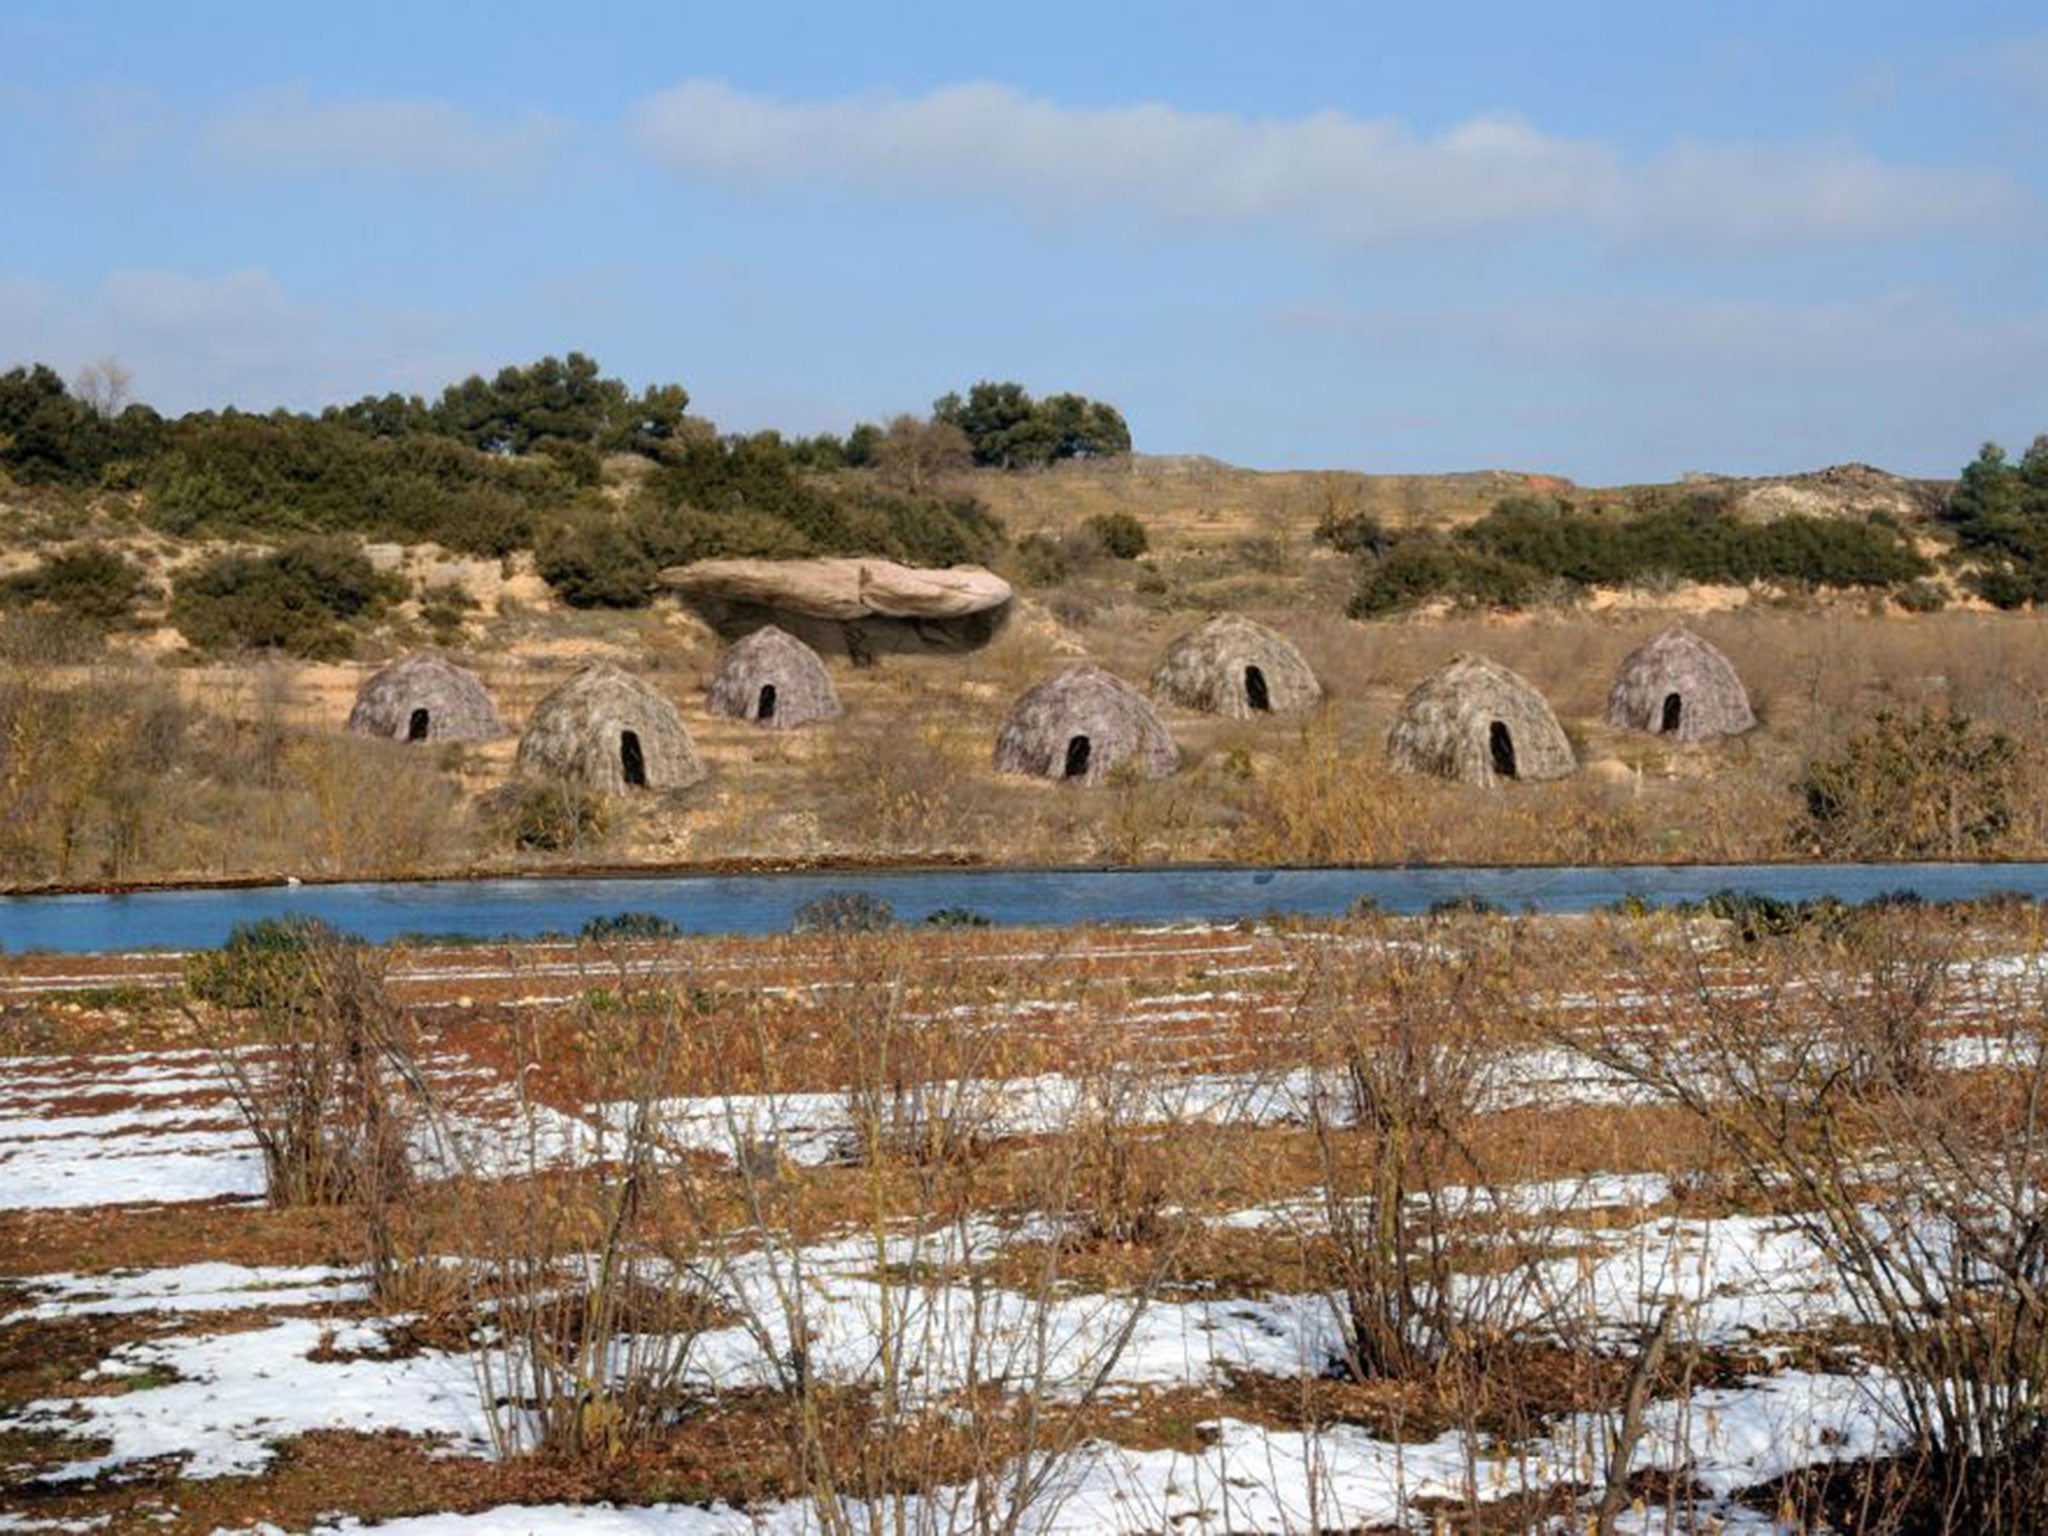 Prehistoric rock carvings 'were humanity's earliest architectural plans'